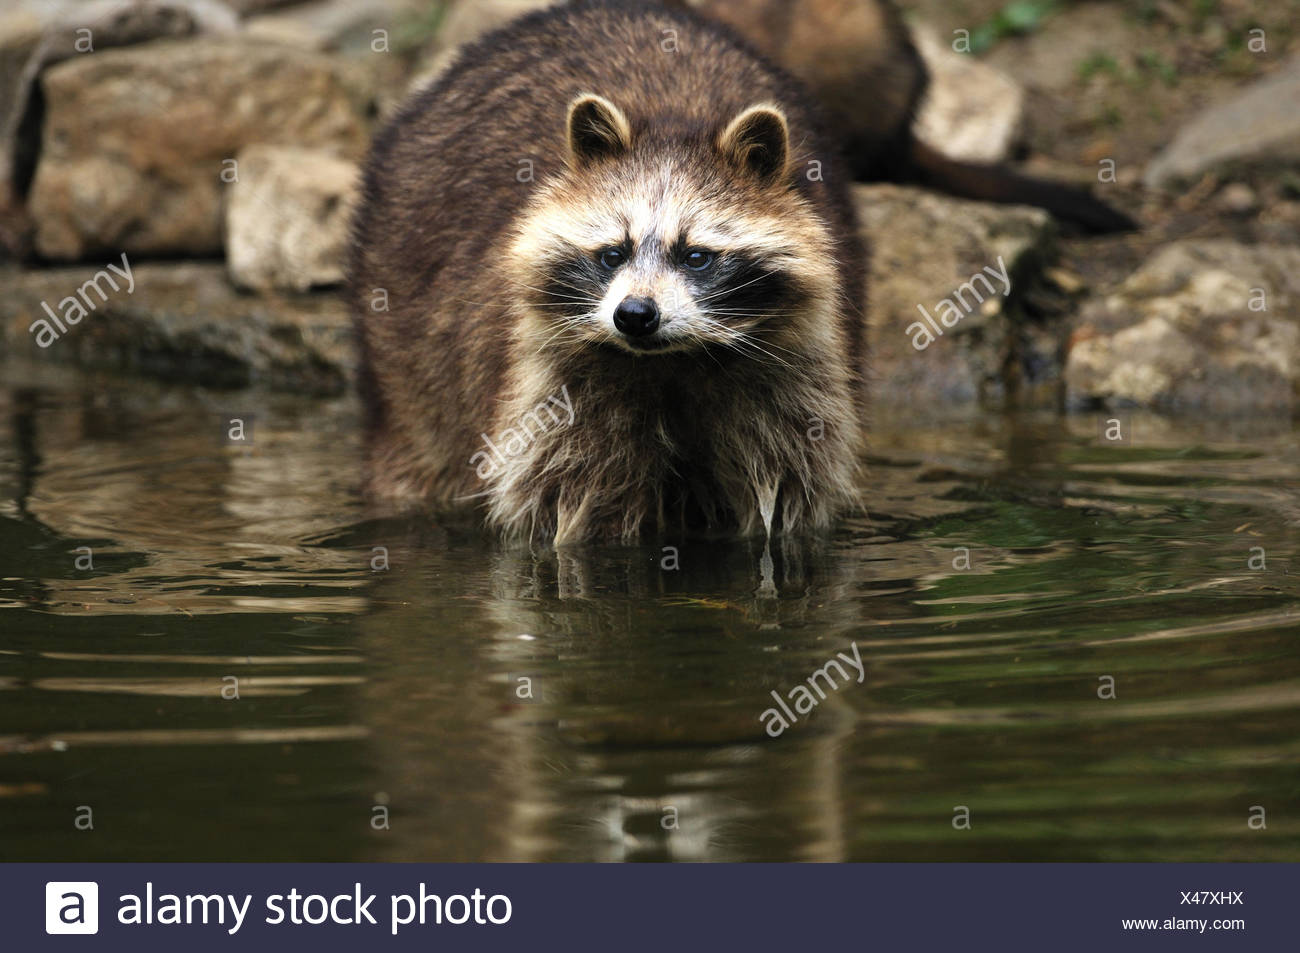 Racoon Canids Predator Small Bear North American Procyon Lotor Racoons Foraging Water Fur Animal